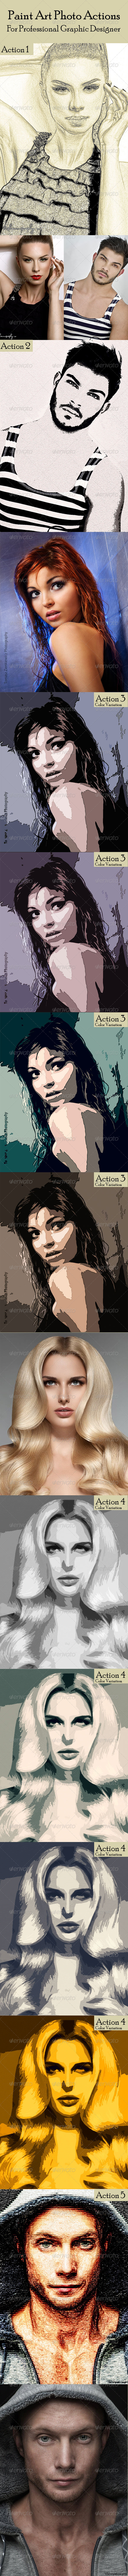 GraphicRiver Paint Art Photo Actions 8187630